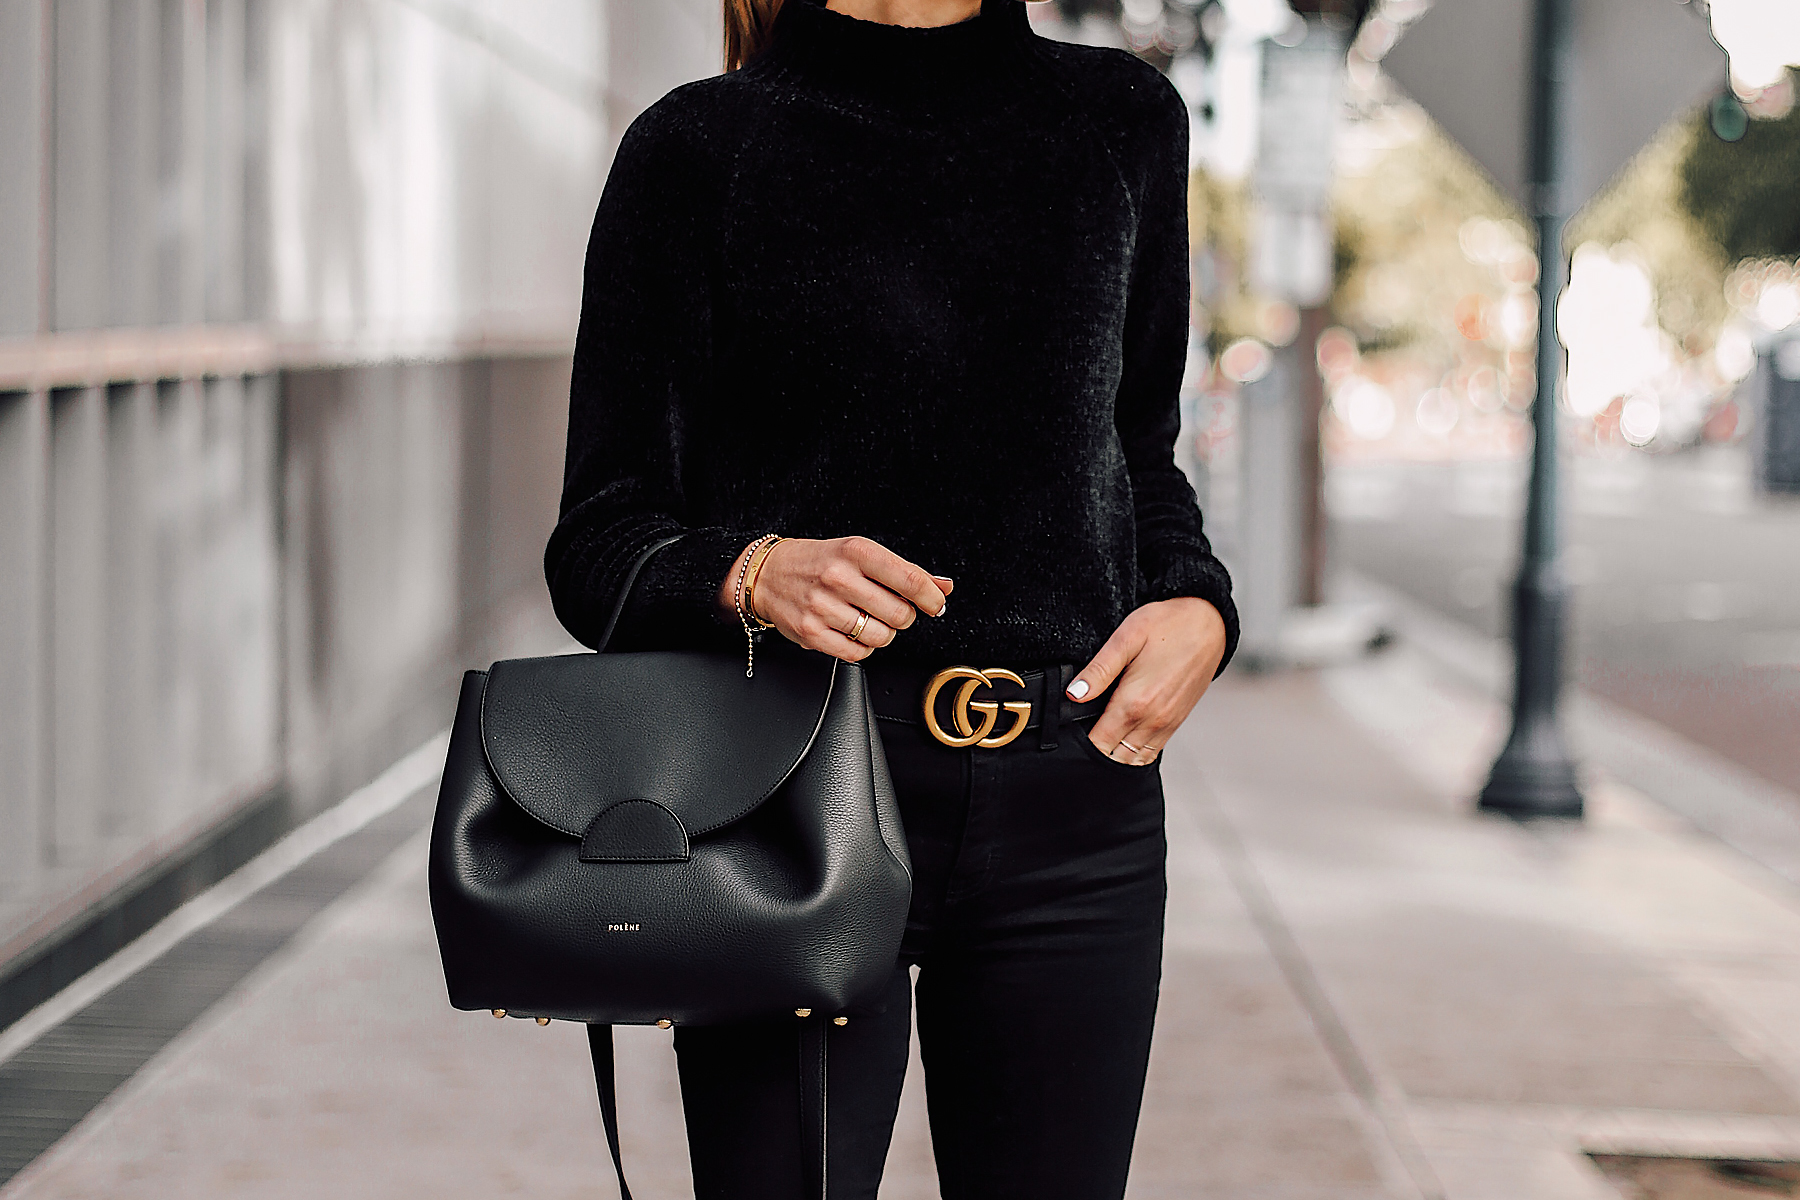 Woman Wearing Black Chenille Mock Neck Sweater Black Skinny Jeans Black Gucci Belt Black Satchel Handbag Fashion Jackson San Diego Fashion Blogger Street Style